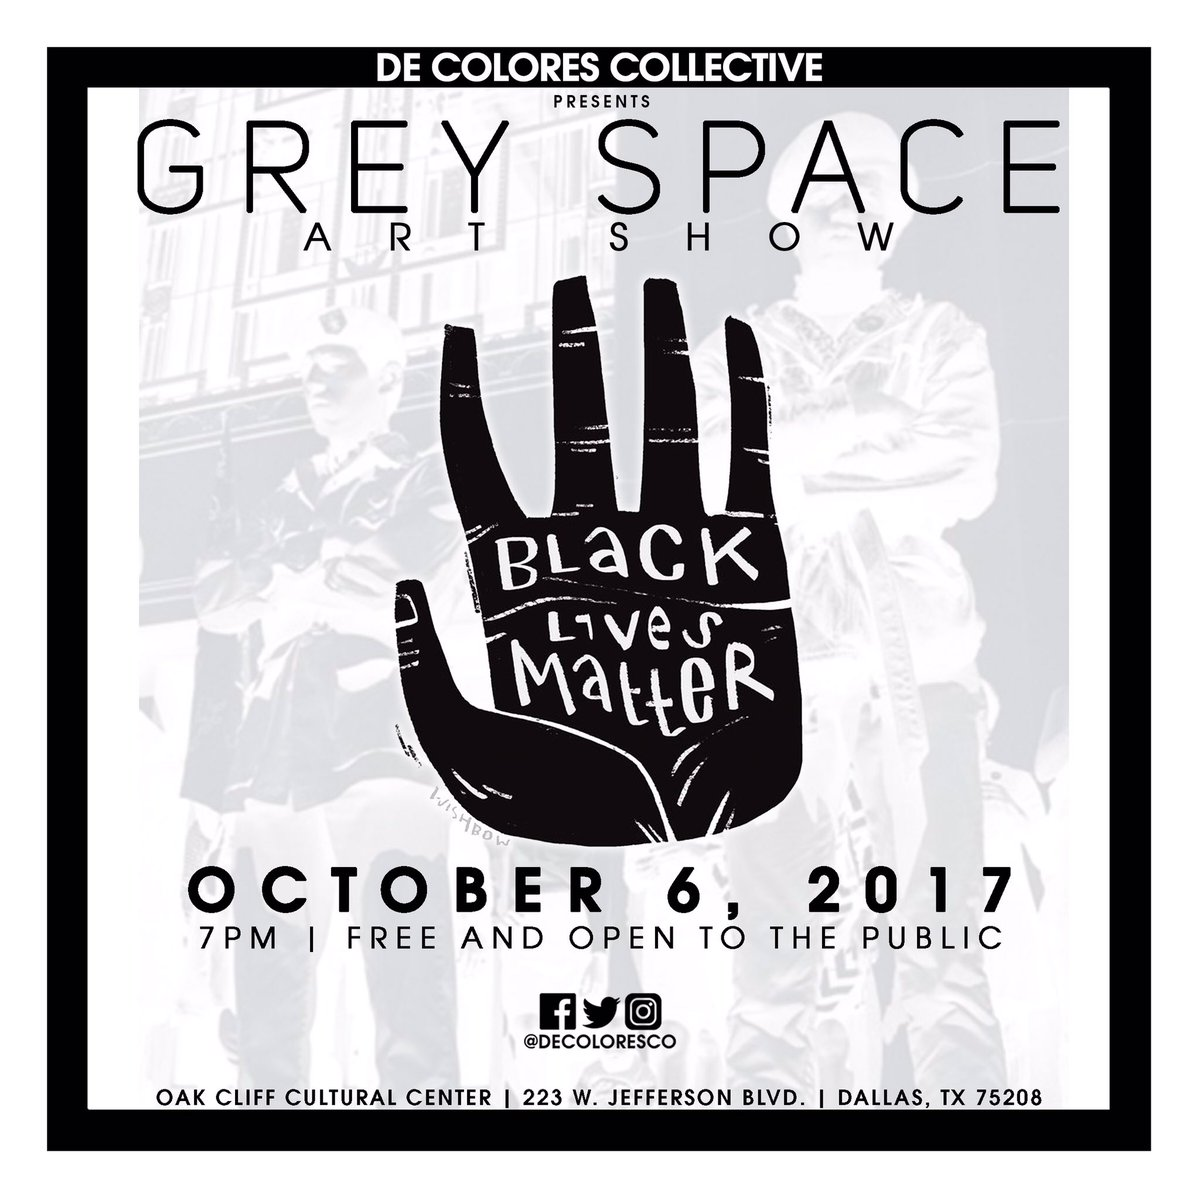 OFFICIALLY ANNOUNCING: GREY SPACE Pop Up Art Show &quot;Black Lives Matter&quot; OCT. 6| 7PM @OakCliffCulture Be there! #BlackLivesMatter  #decoloresco<br>http://pic.twitter.com/on2A79Ki6S